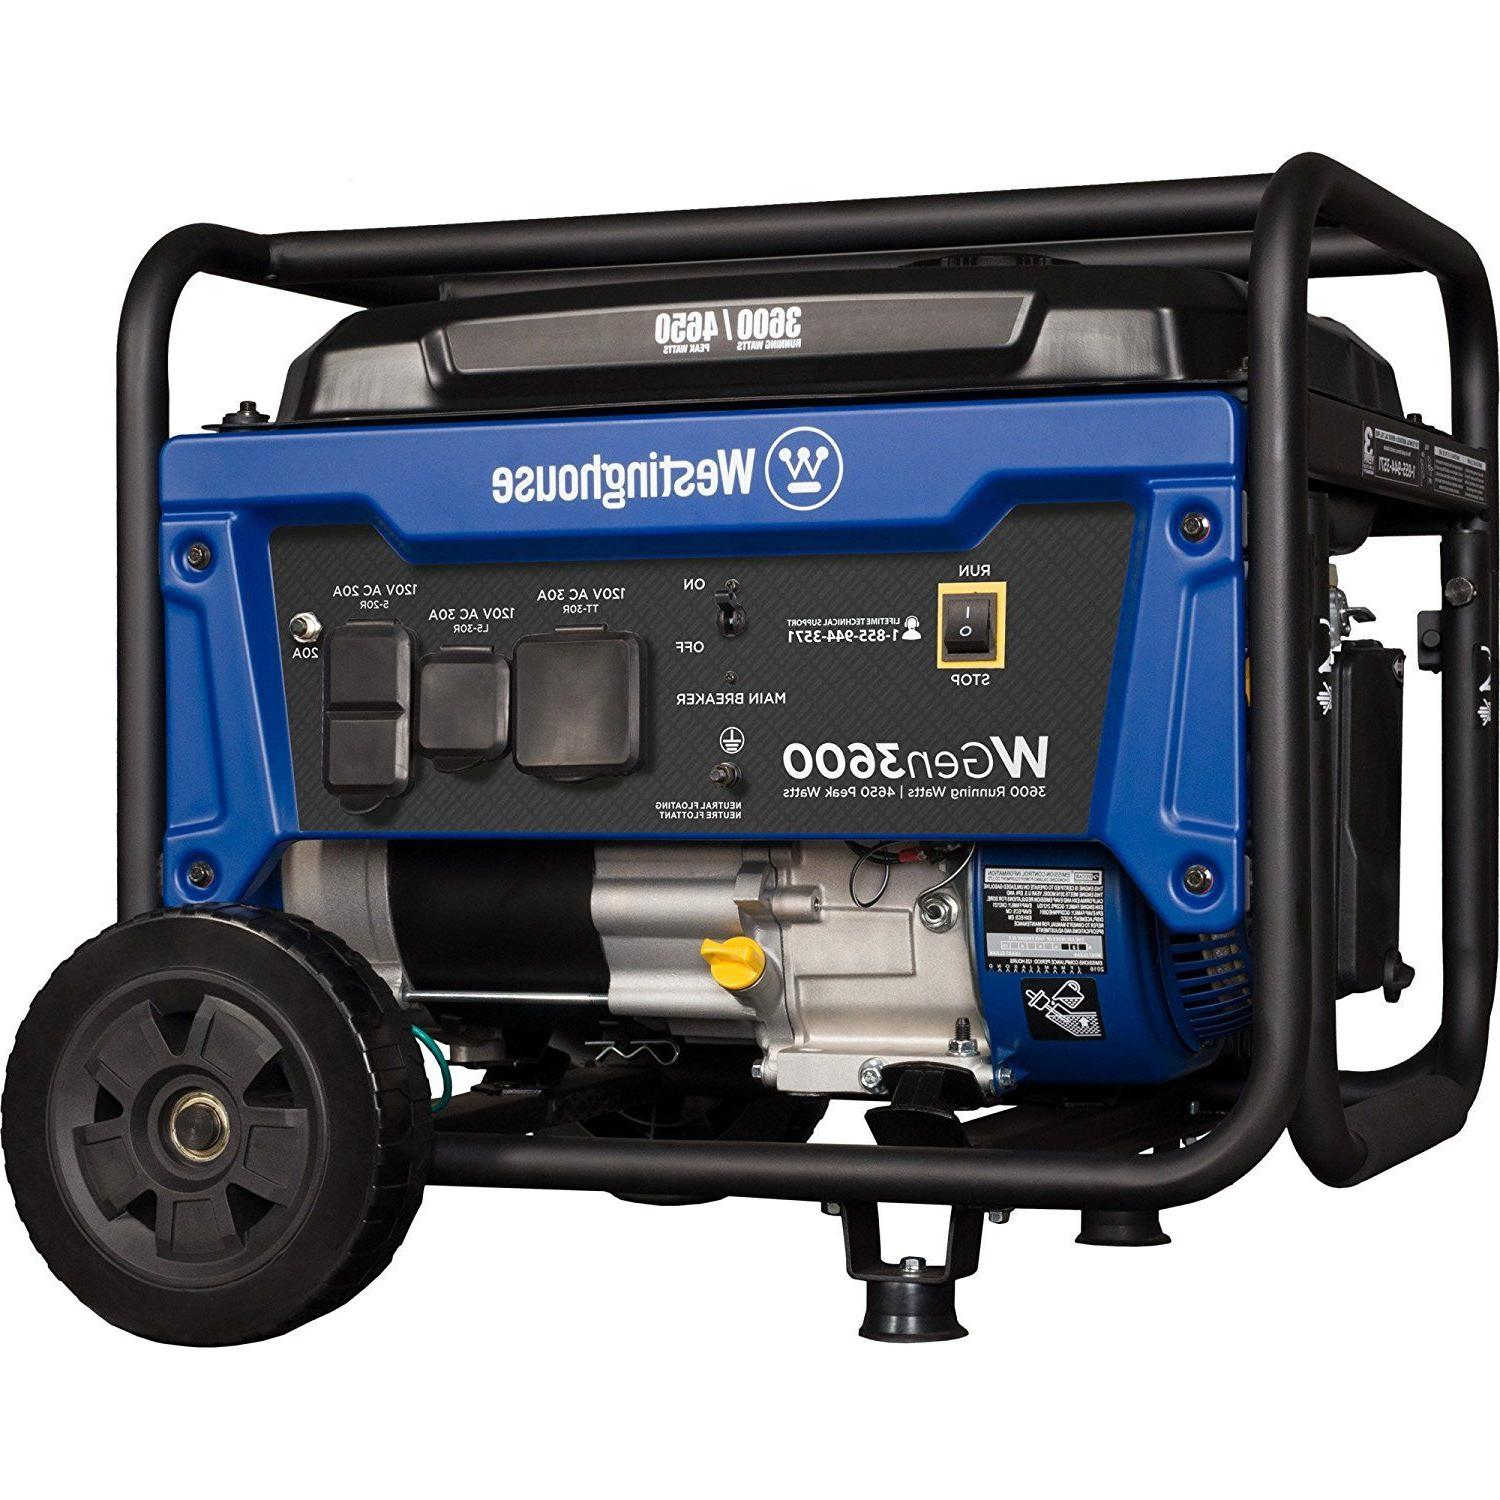 portable gas generator wgen3600 3600 rated watts